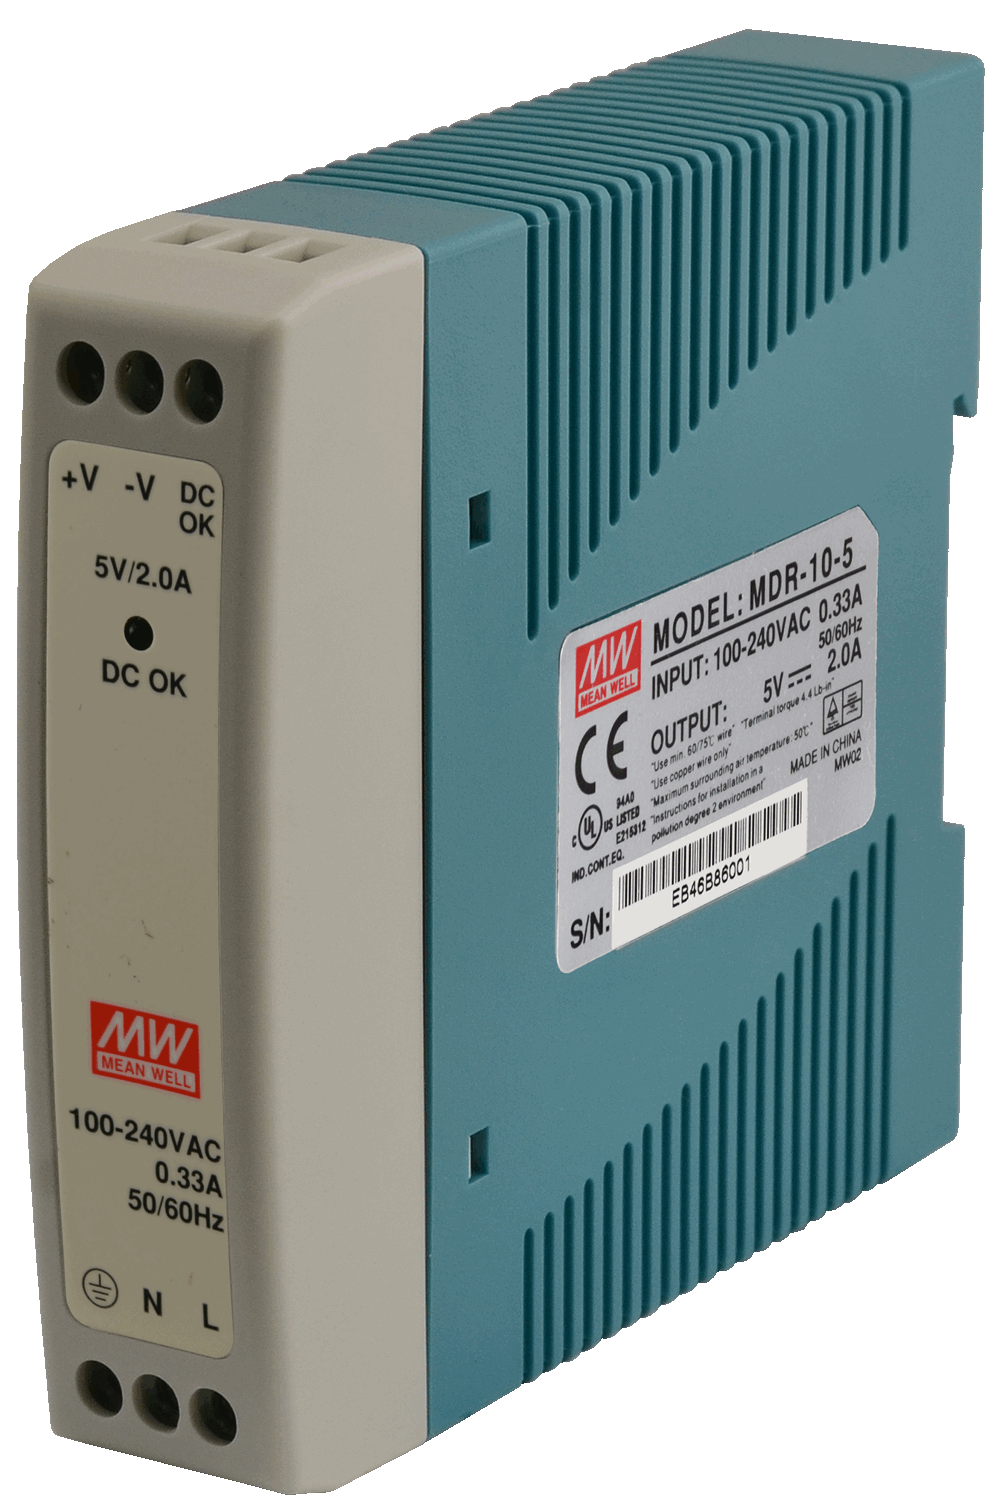 mdr 5v 10w 2a din rail power supply units mdr 10 5